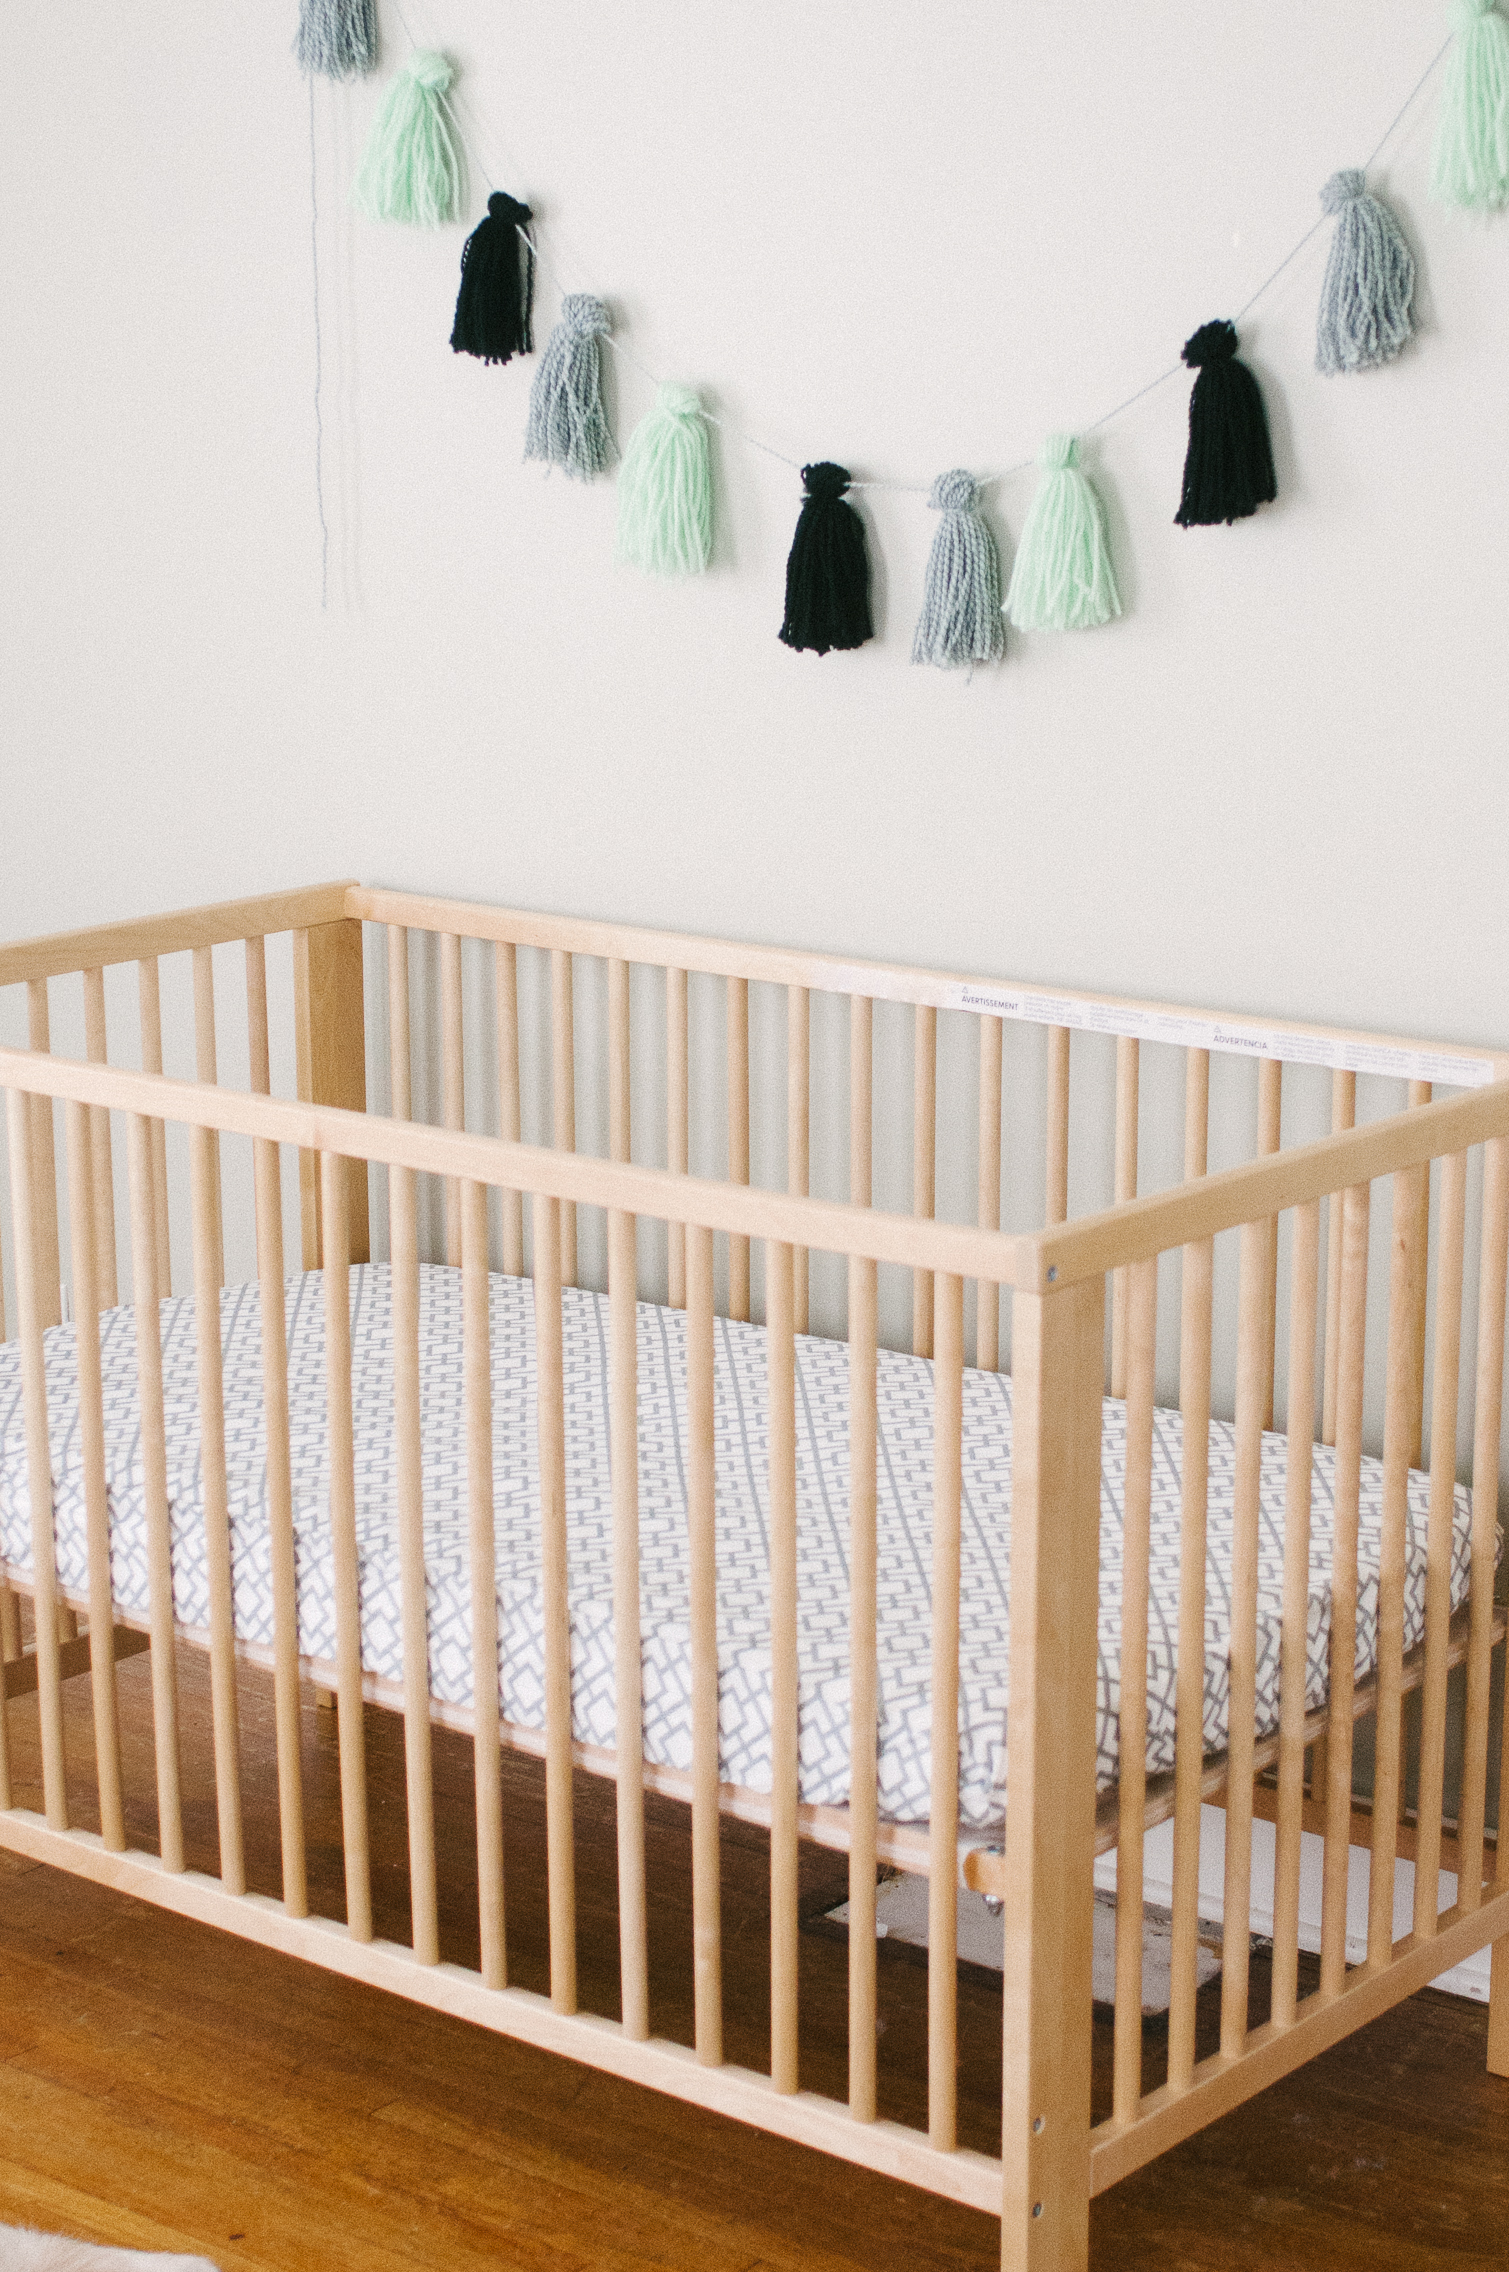 Ikea Crib Ikea Gulliver Toddler Bed Review – Nazarm.com